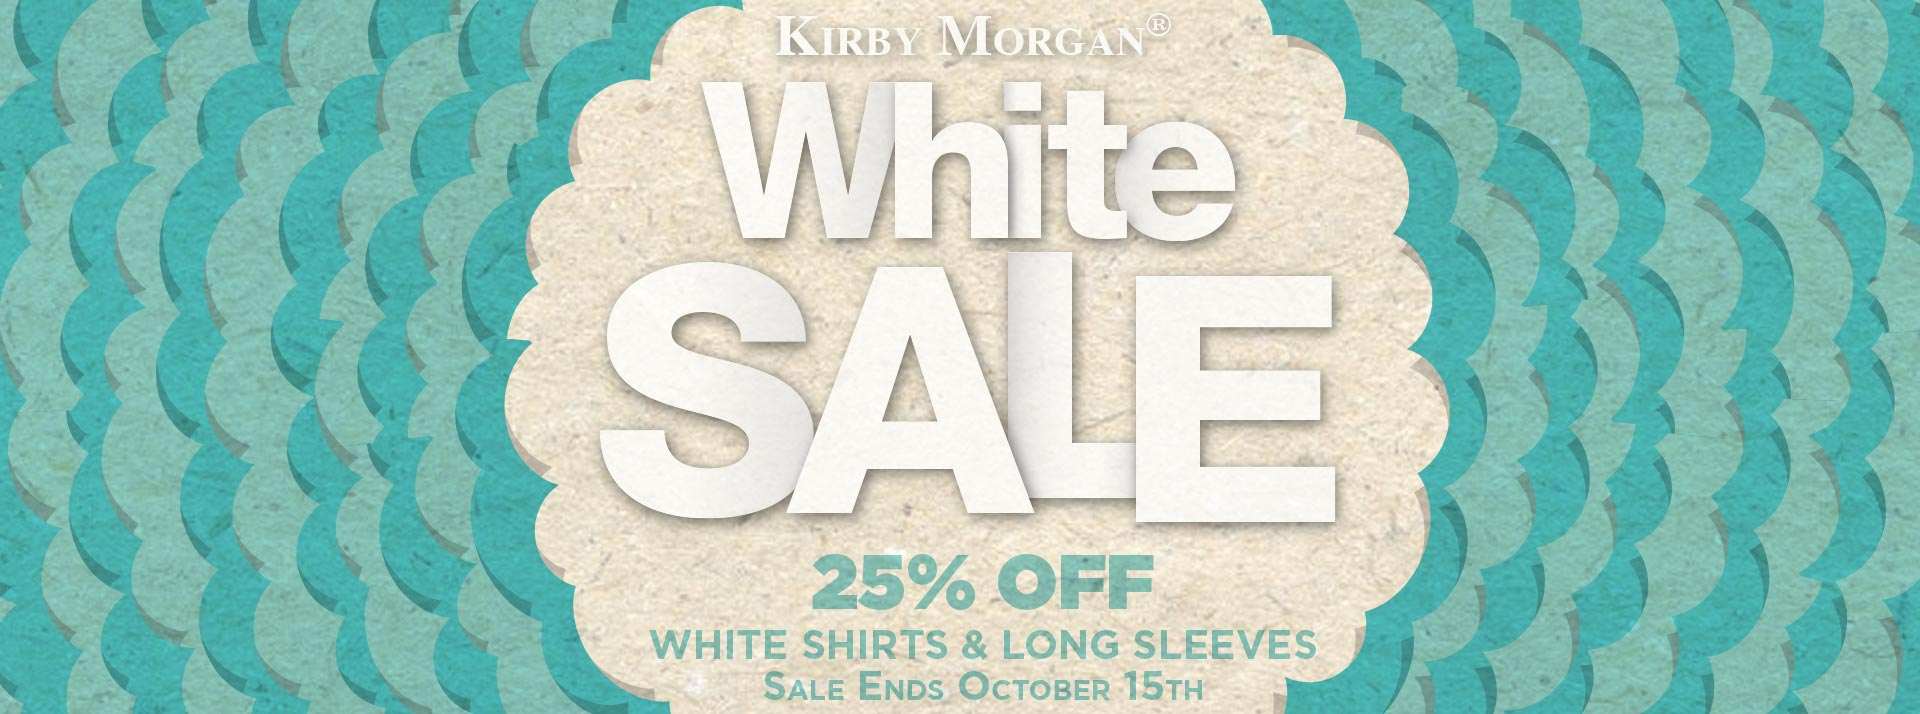 Kirby Morgan White Sale 25% Off White Shirts and Long Sleeves